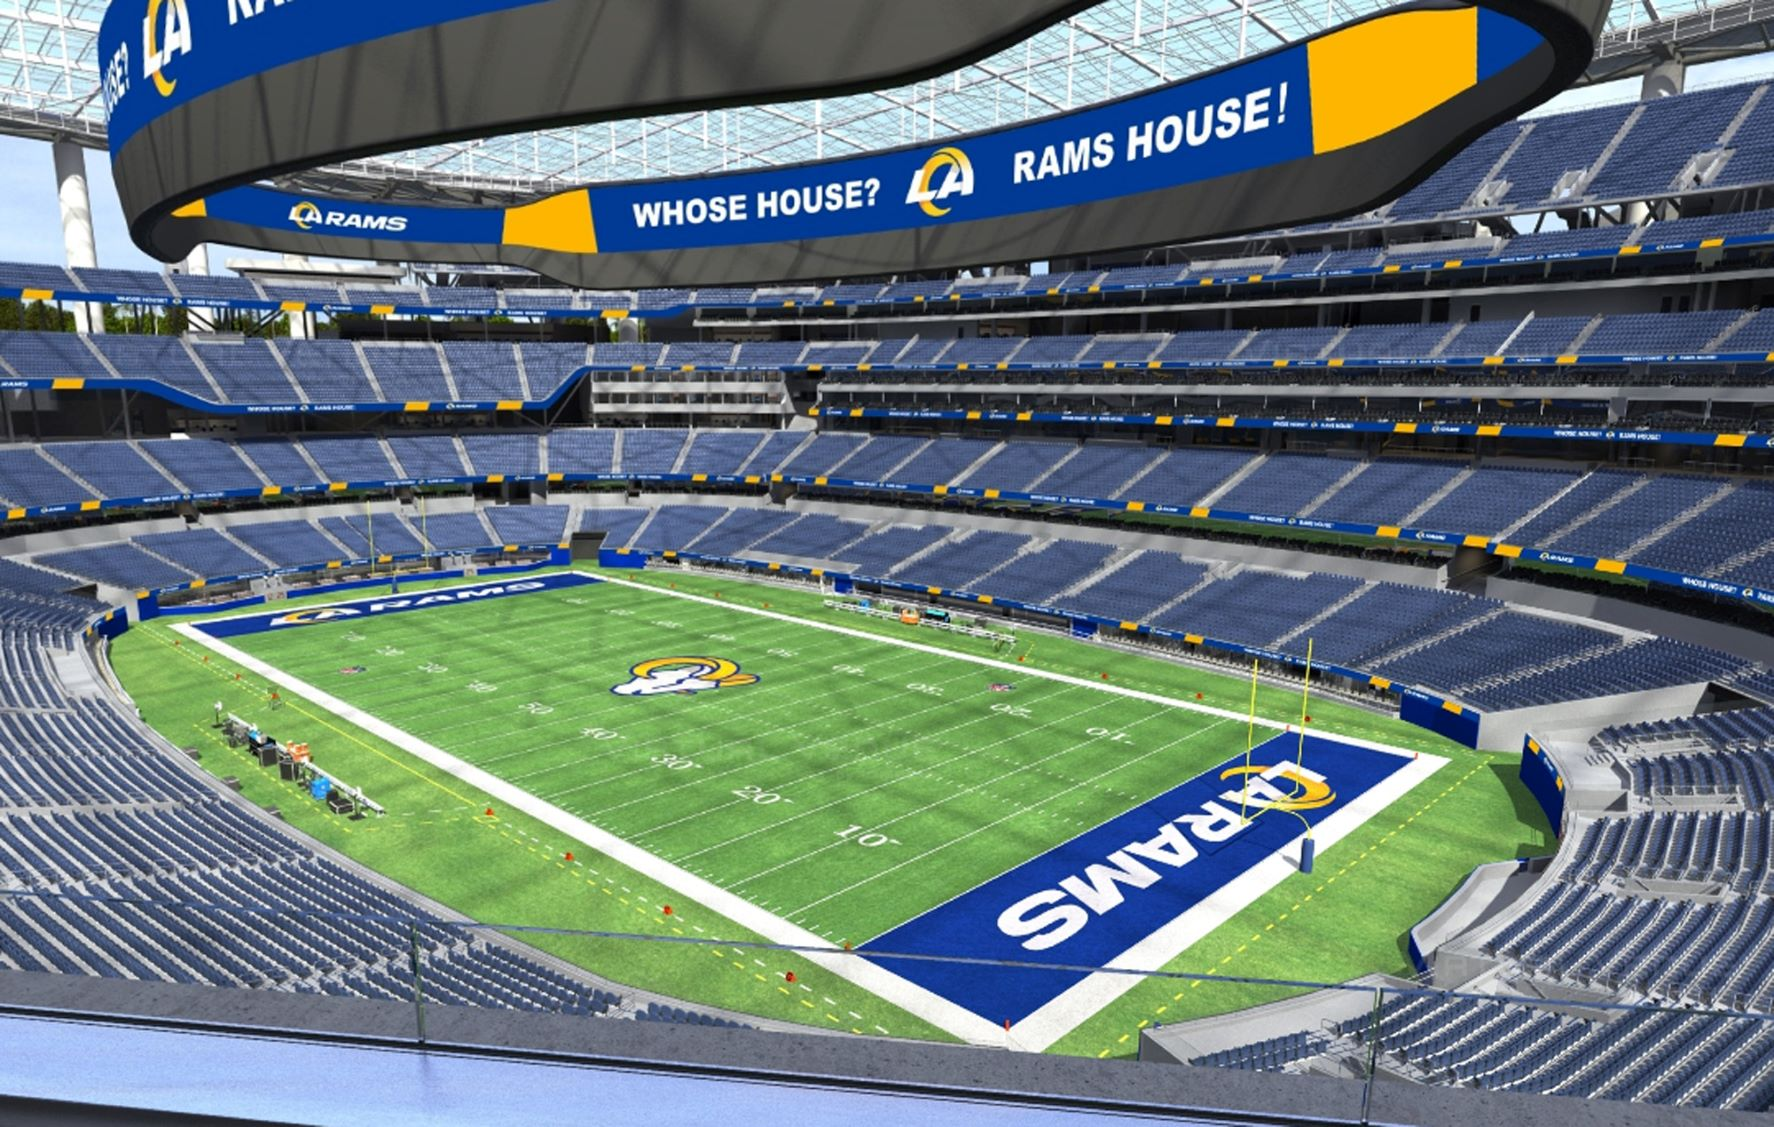 SoFi Stadium will feature state-of-the art luxury suites